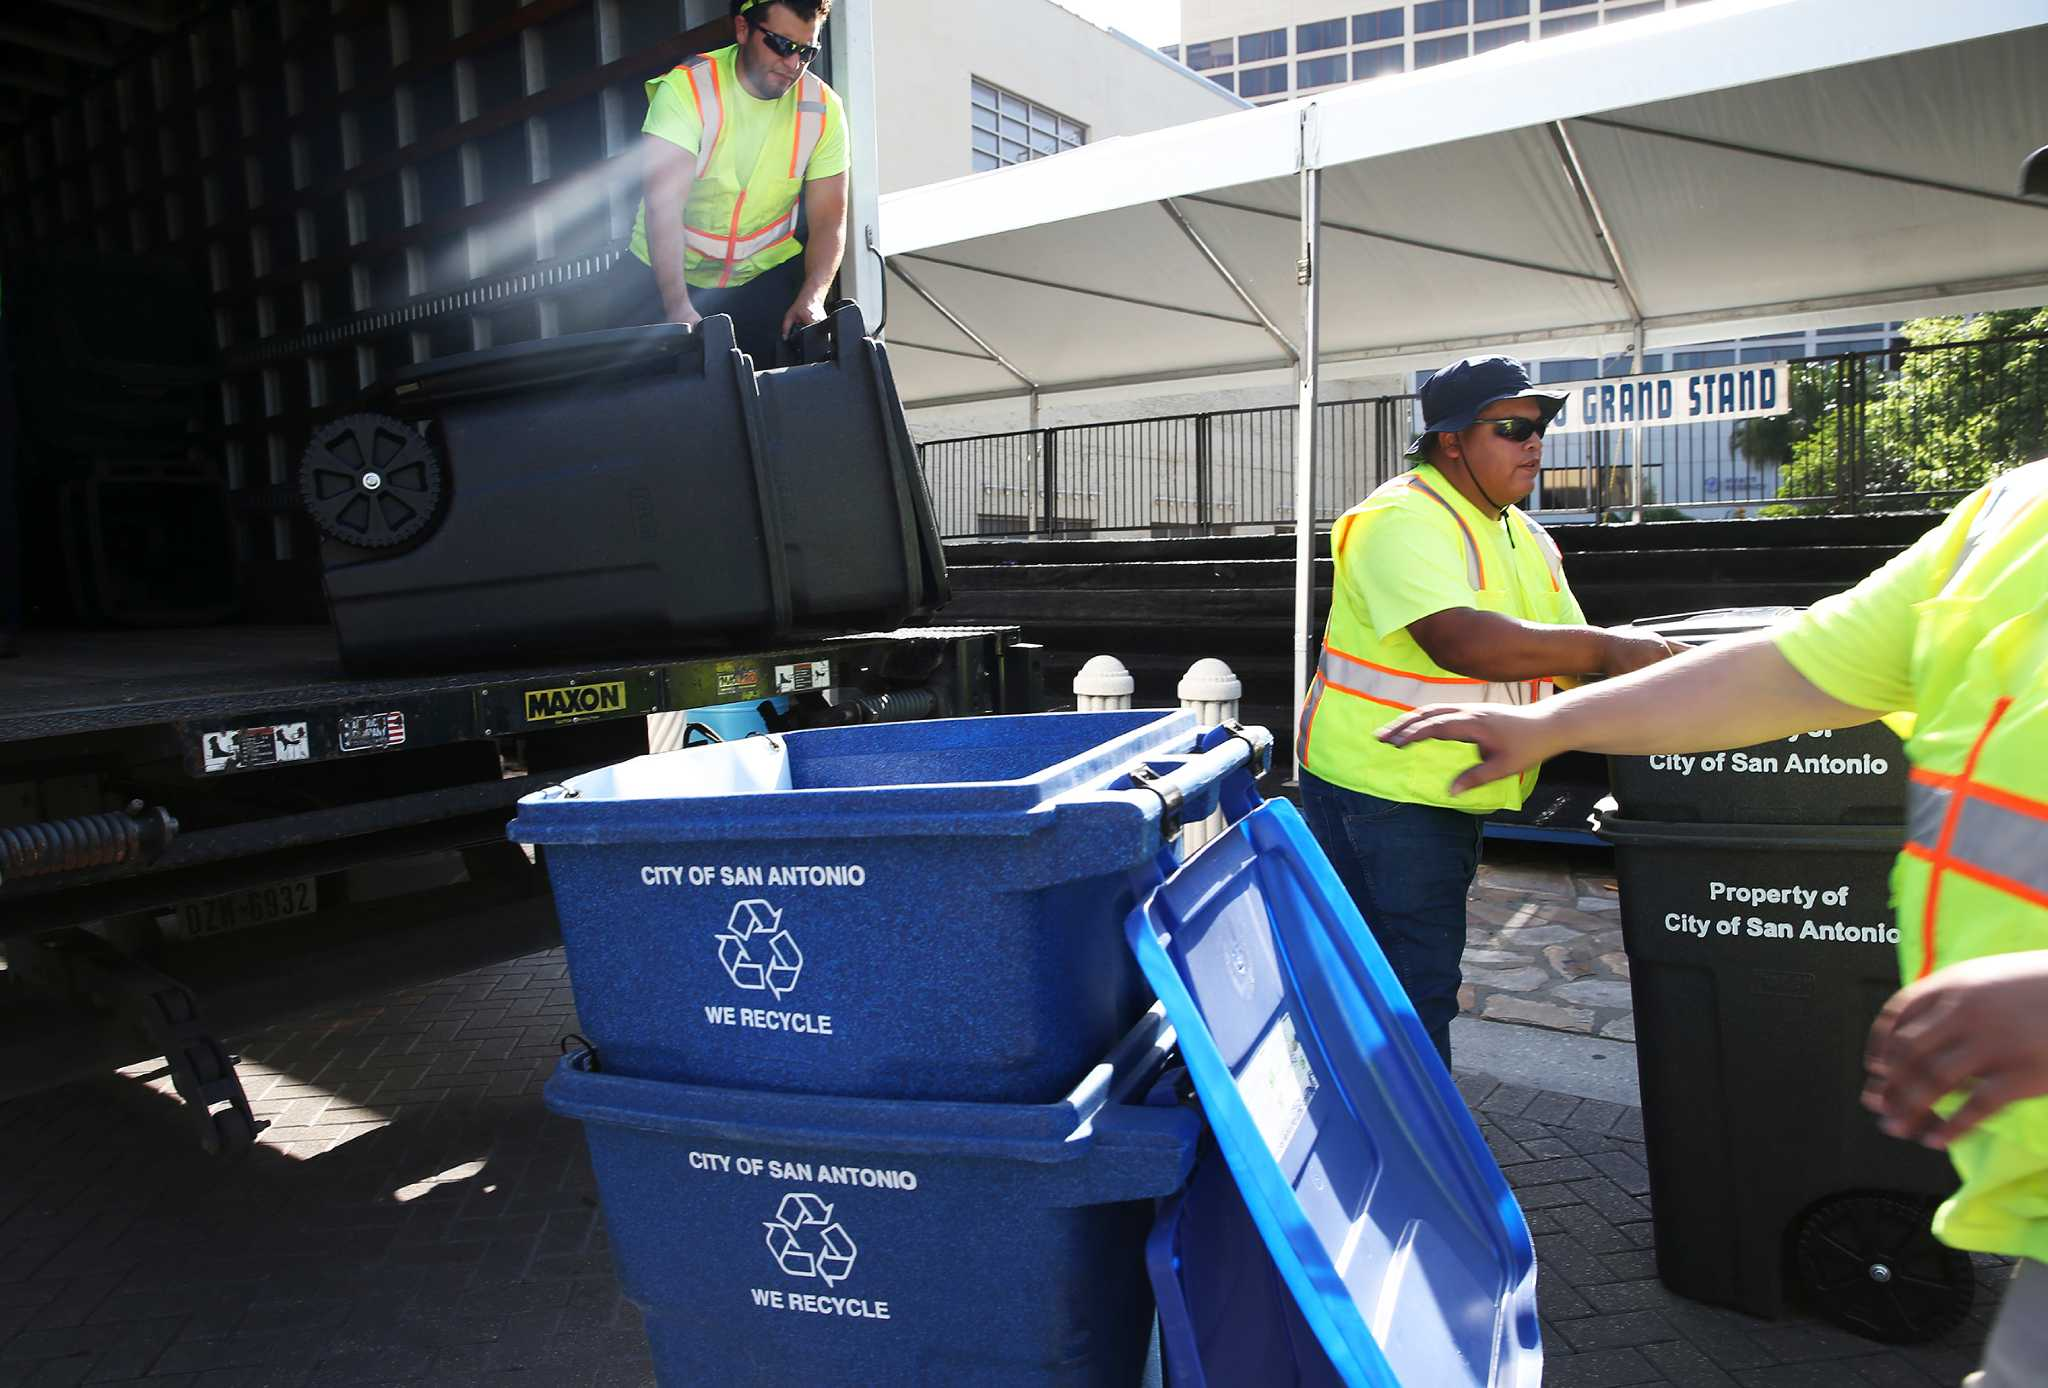 City Trash Found In Recycling Bin Will Result In A 25